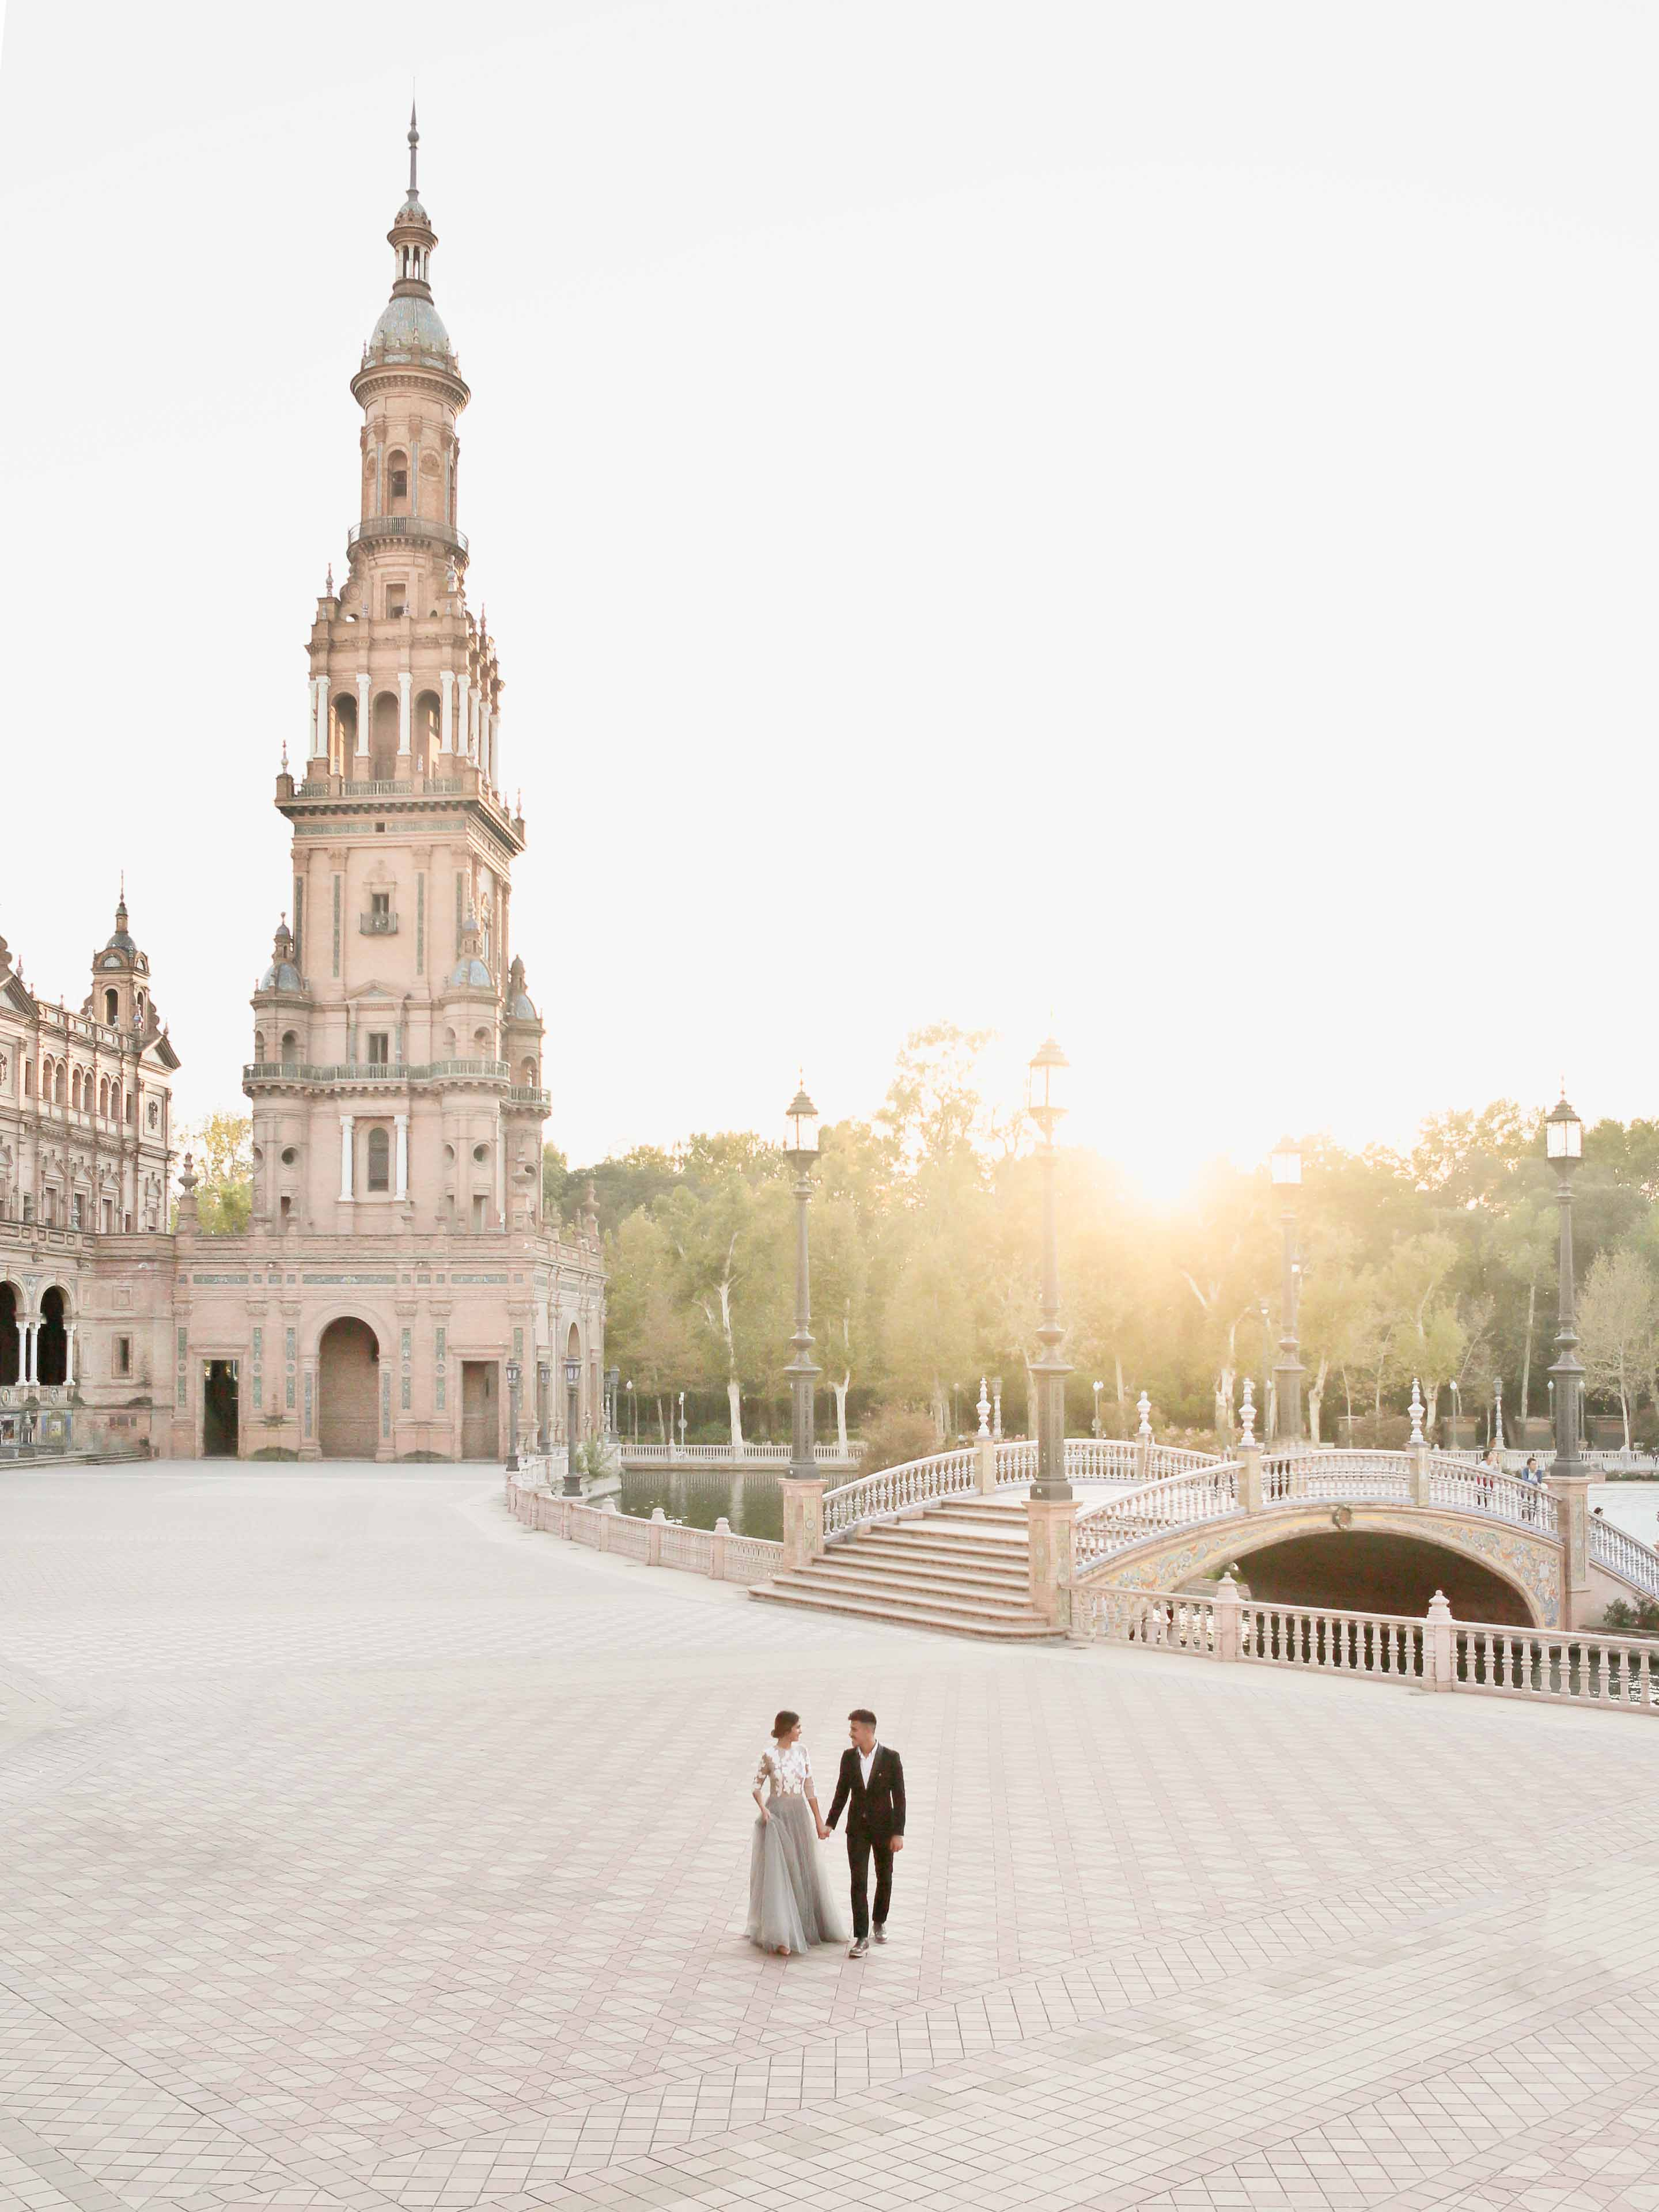 lovers strolling at sunset in the desert plaza de espana in seville